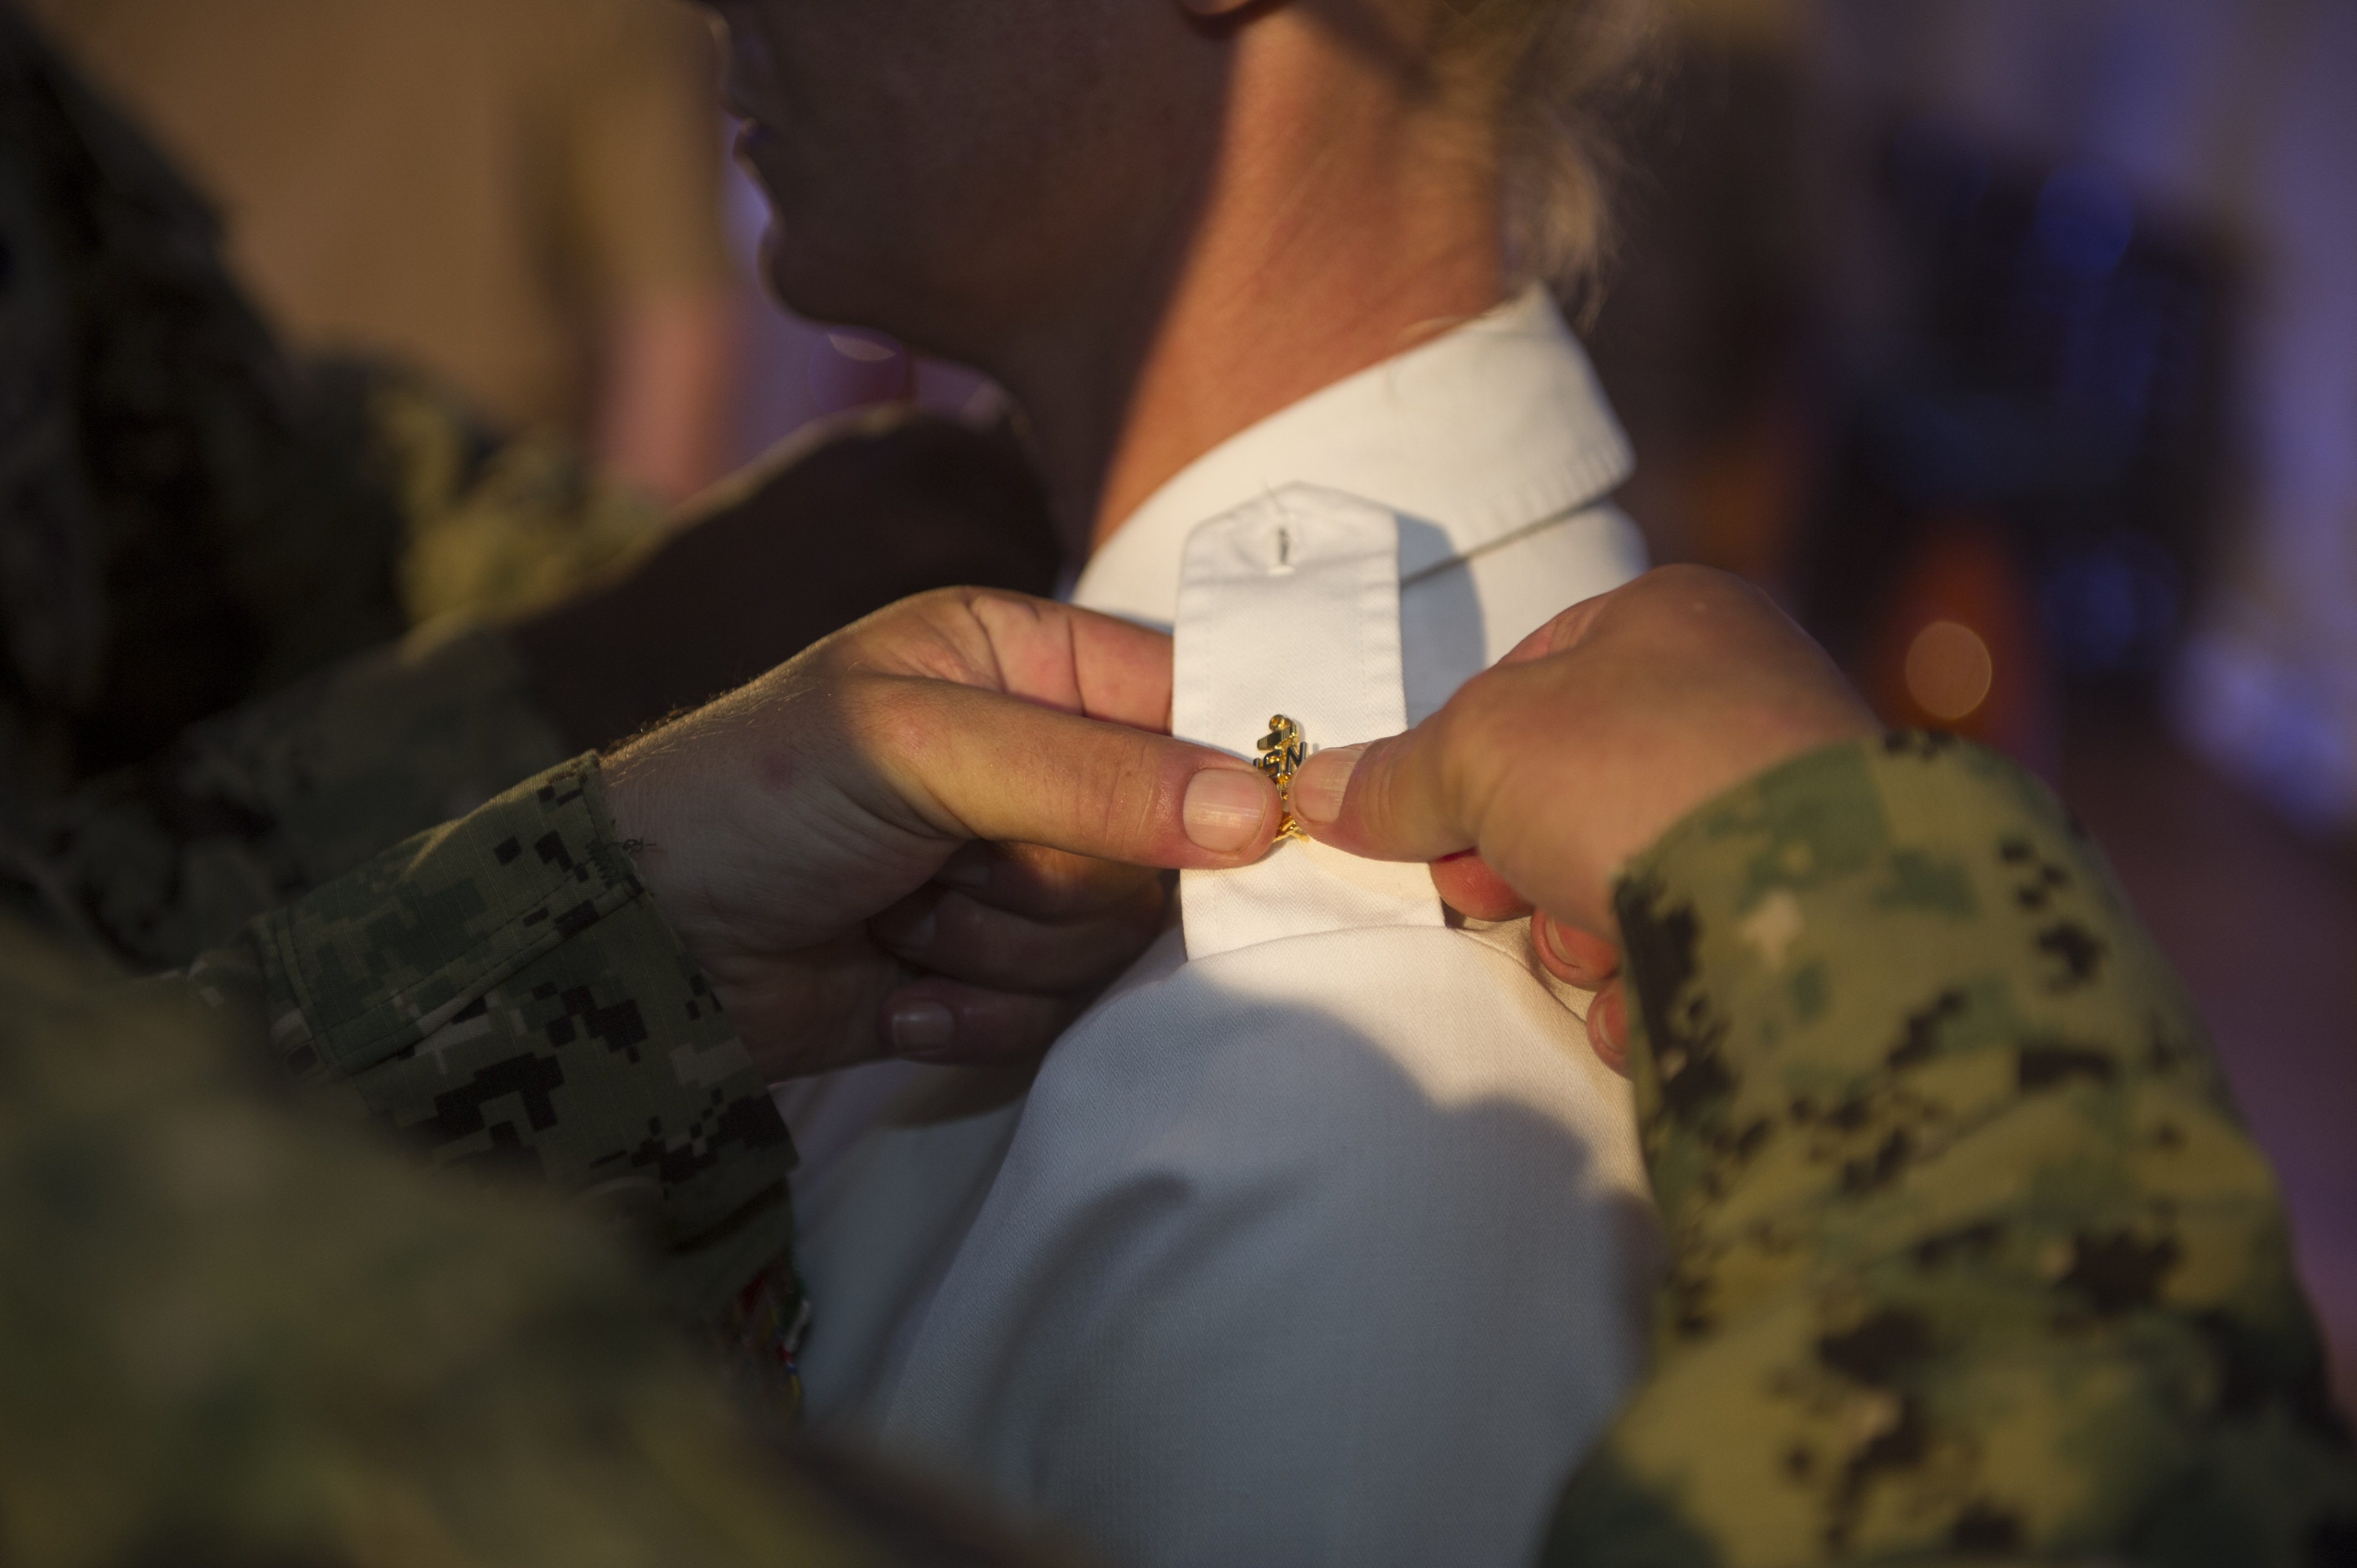 U.S. Army Sgt. 1st Class Heather Wright, receives an anchor, symbolizing her status as an honorary member of Camp Lemonnier's Chief Petty Officers Mess, during a pinning ceremony at Camp Lemonnier, Djibouti, Sept. 16, 2015.  The two-month Navy Chief Petty Officer 365 Phase Two season develops new chief petty officers through challenging mental and physical activities. (U.S. Navy Petty Officer 1st Class Drae Parker)